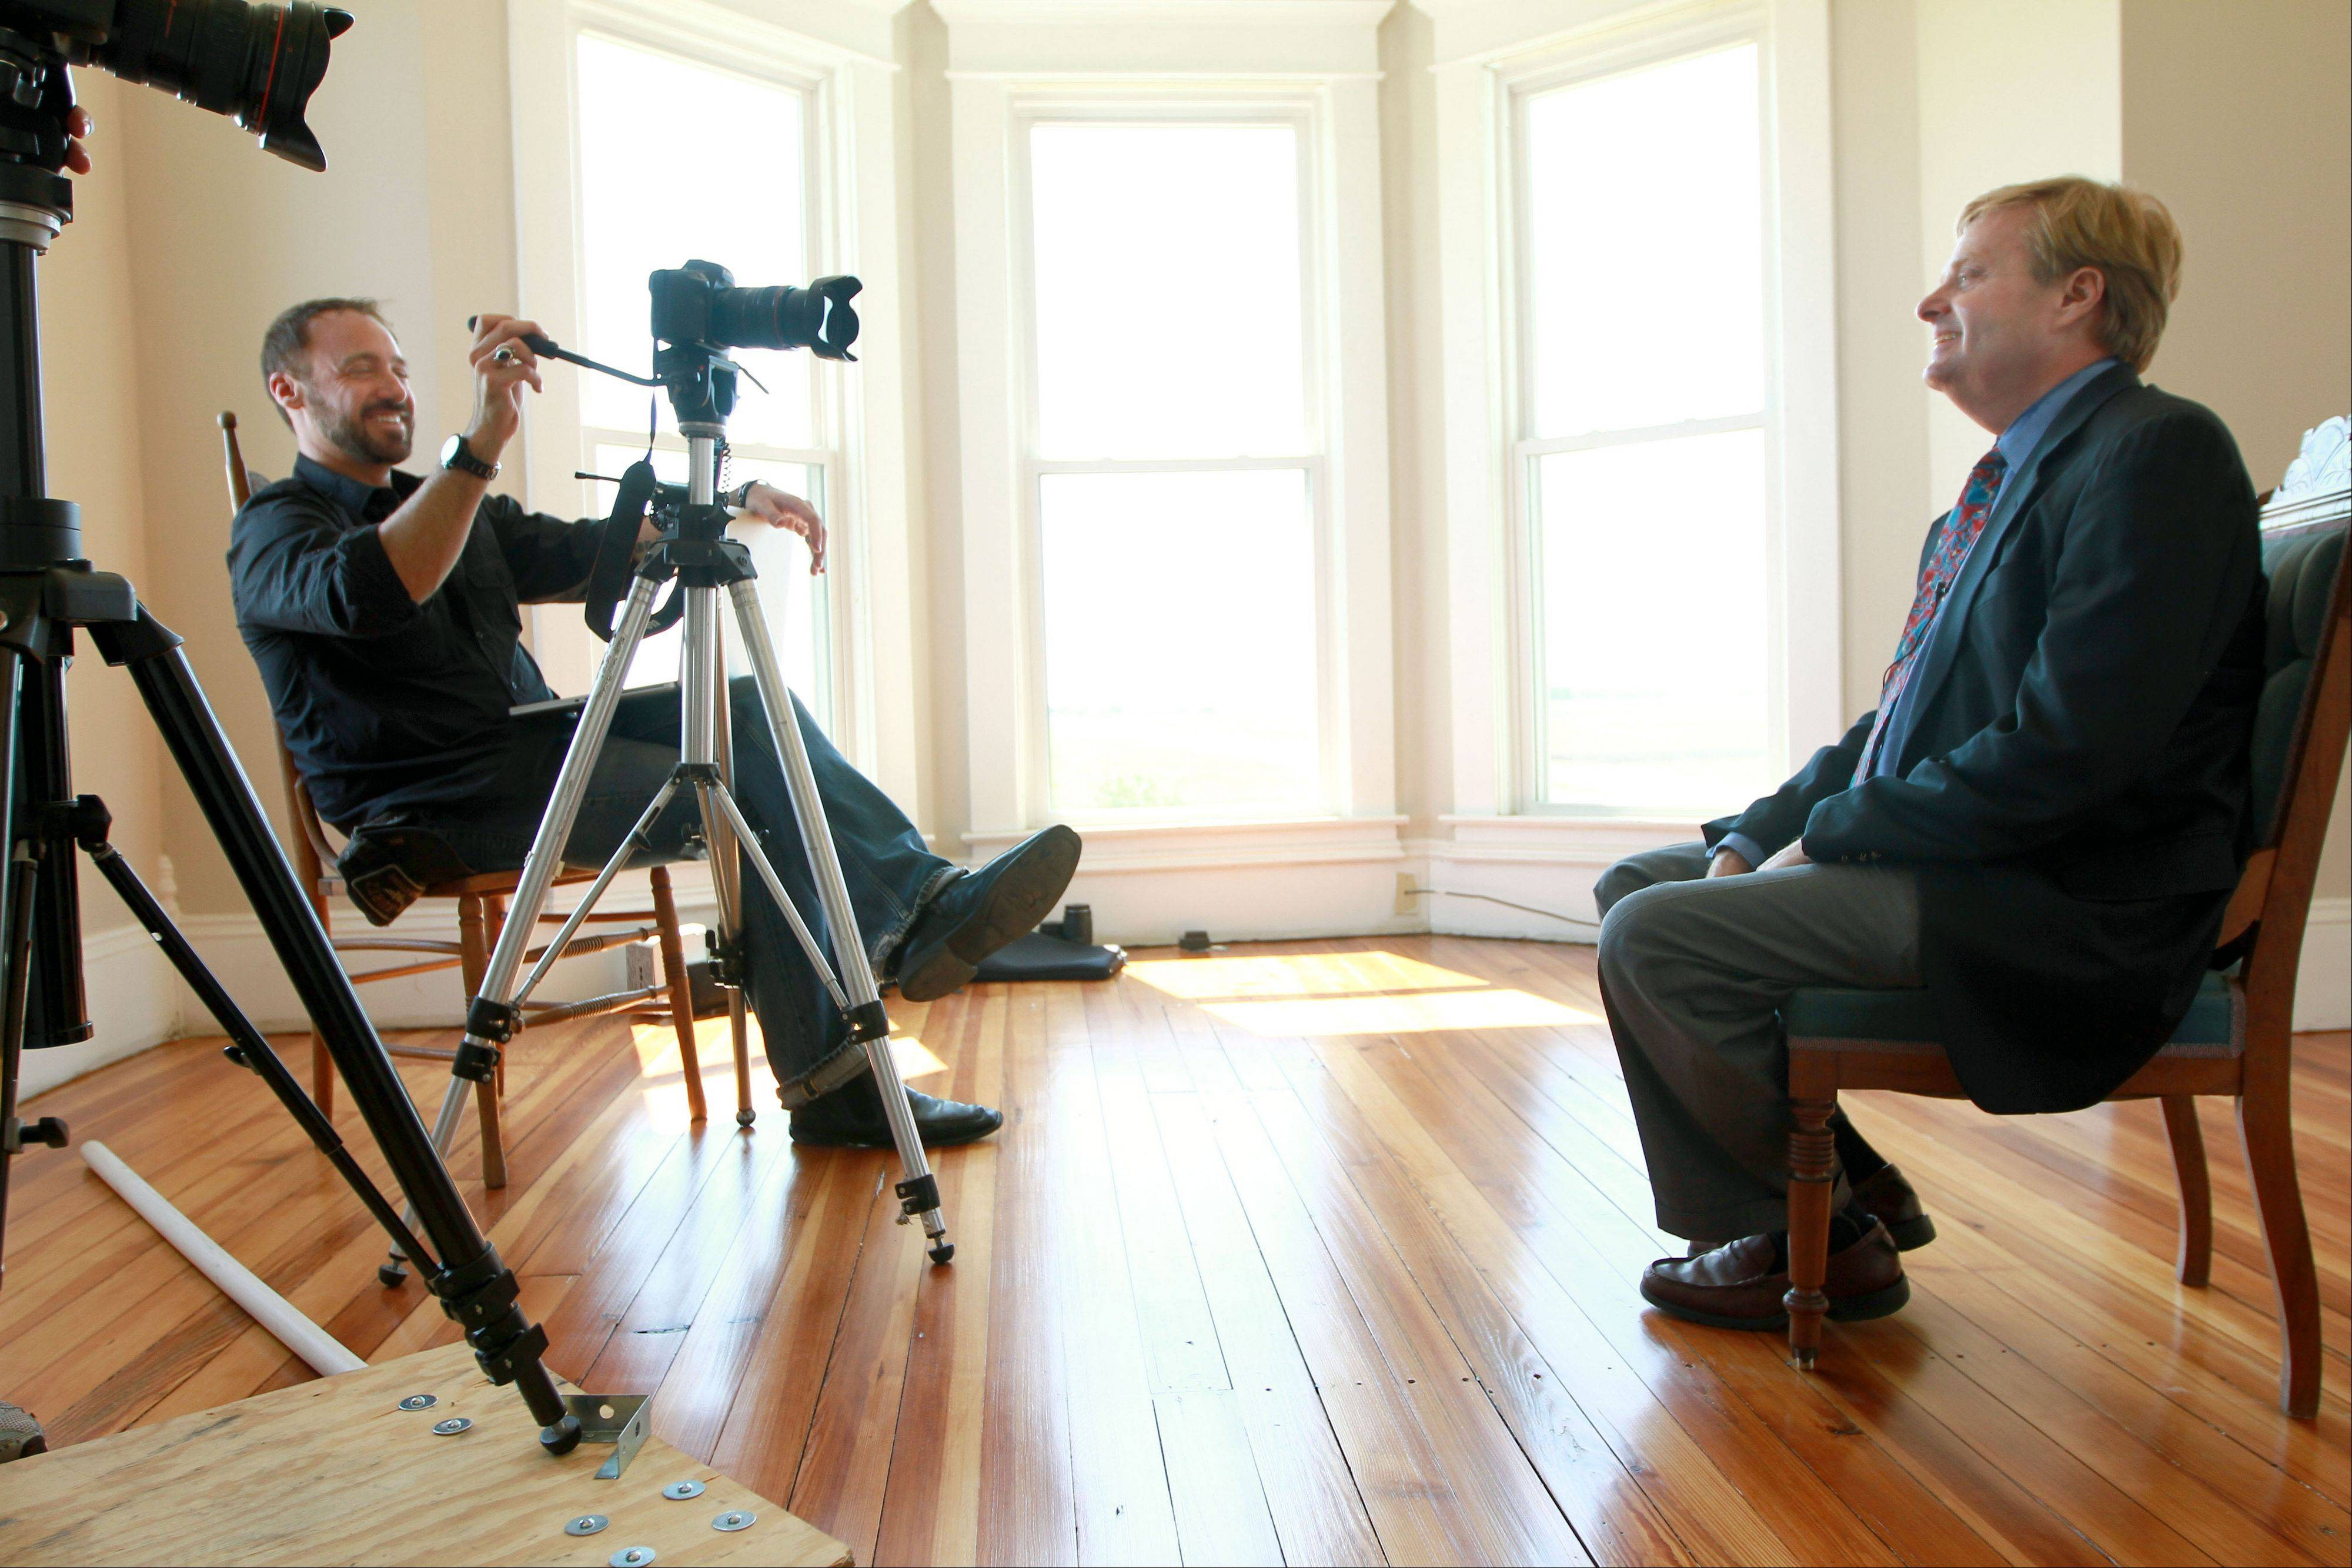 Steve Zukerman interviews Nelson Price about the history of the Dunham house and the area around it for the documentary film project. The Dunham house in Kempton, Ind., is the subject of a documentary film project about President Barack Obama's ancestral roots in Indiana.